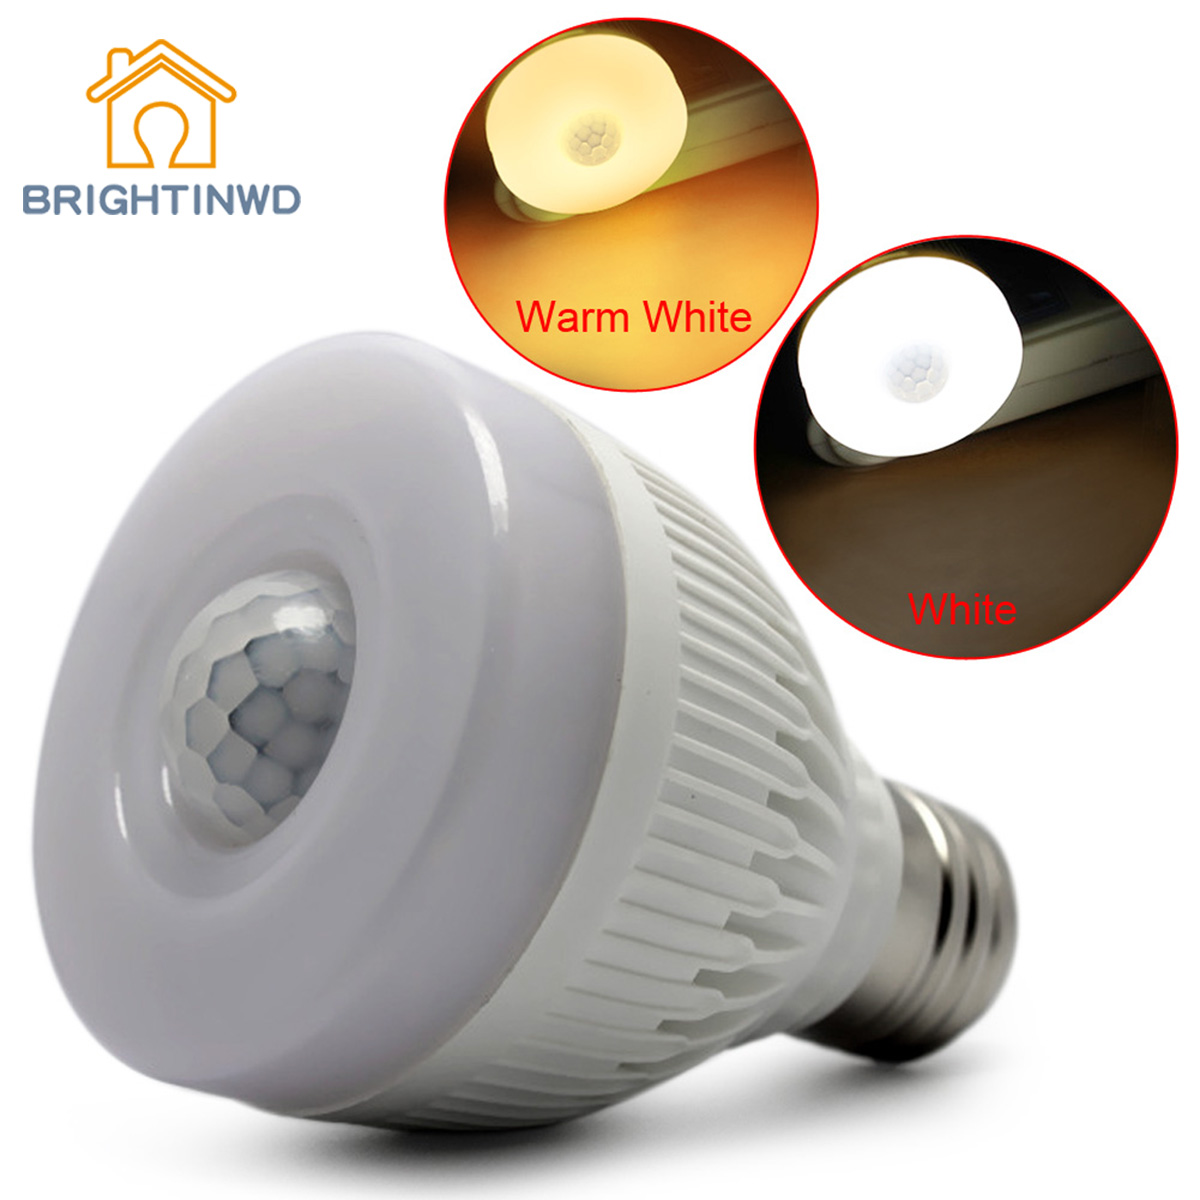 BRIGHTINWD E27 5W Night Bulb PIR Infrared Motion Sensor Detector LED Auto Lamp Light Bright hot sale lowest price 3led pir infrared auto motion sensor detector security wireless cabinet night light free shipping